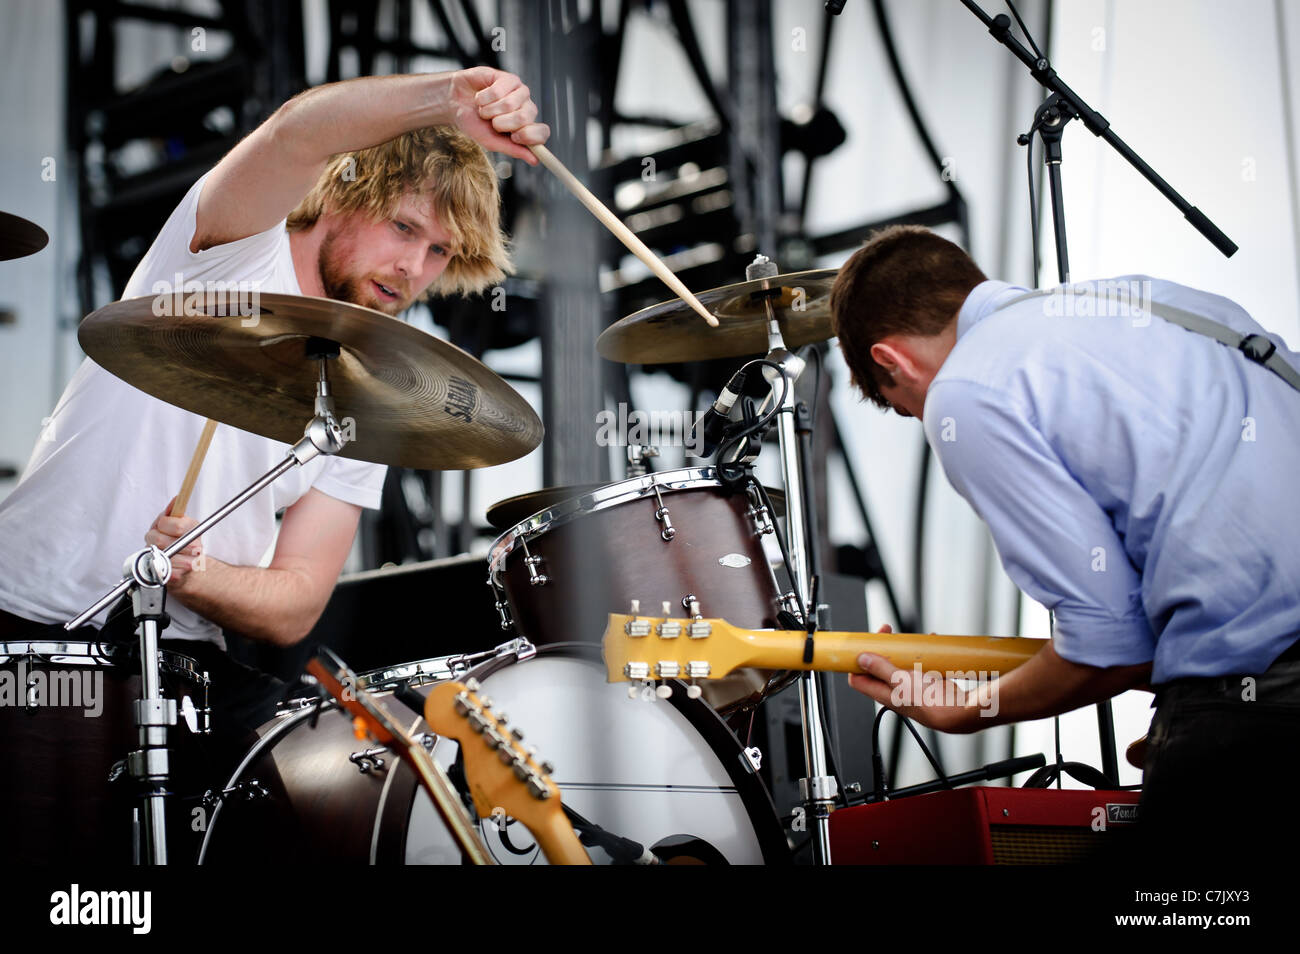 Hey Rosetta! Canadian indie rock band performs at Downsview Park on Canada Day, July 01, 2011 Stock Photo